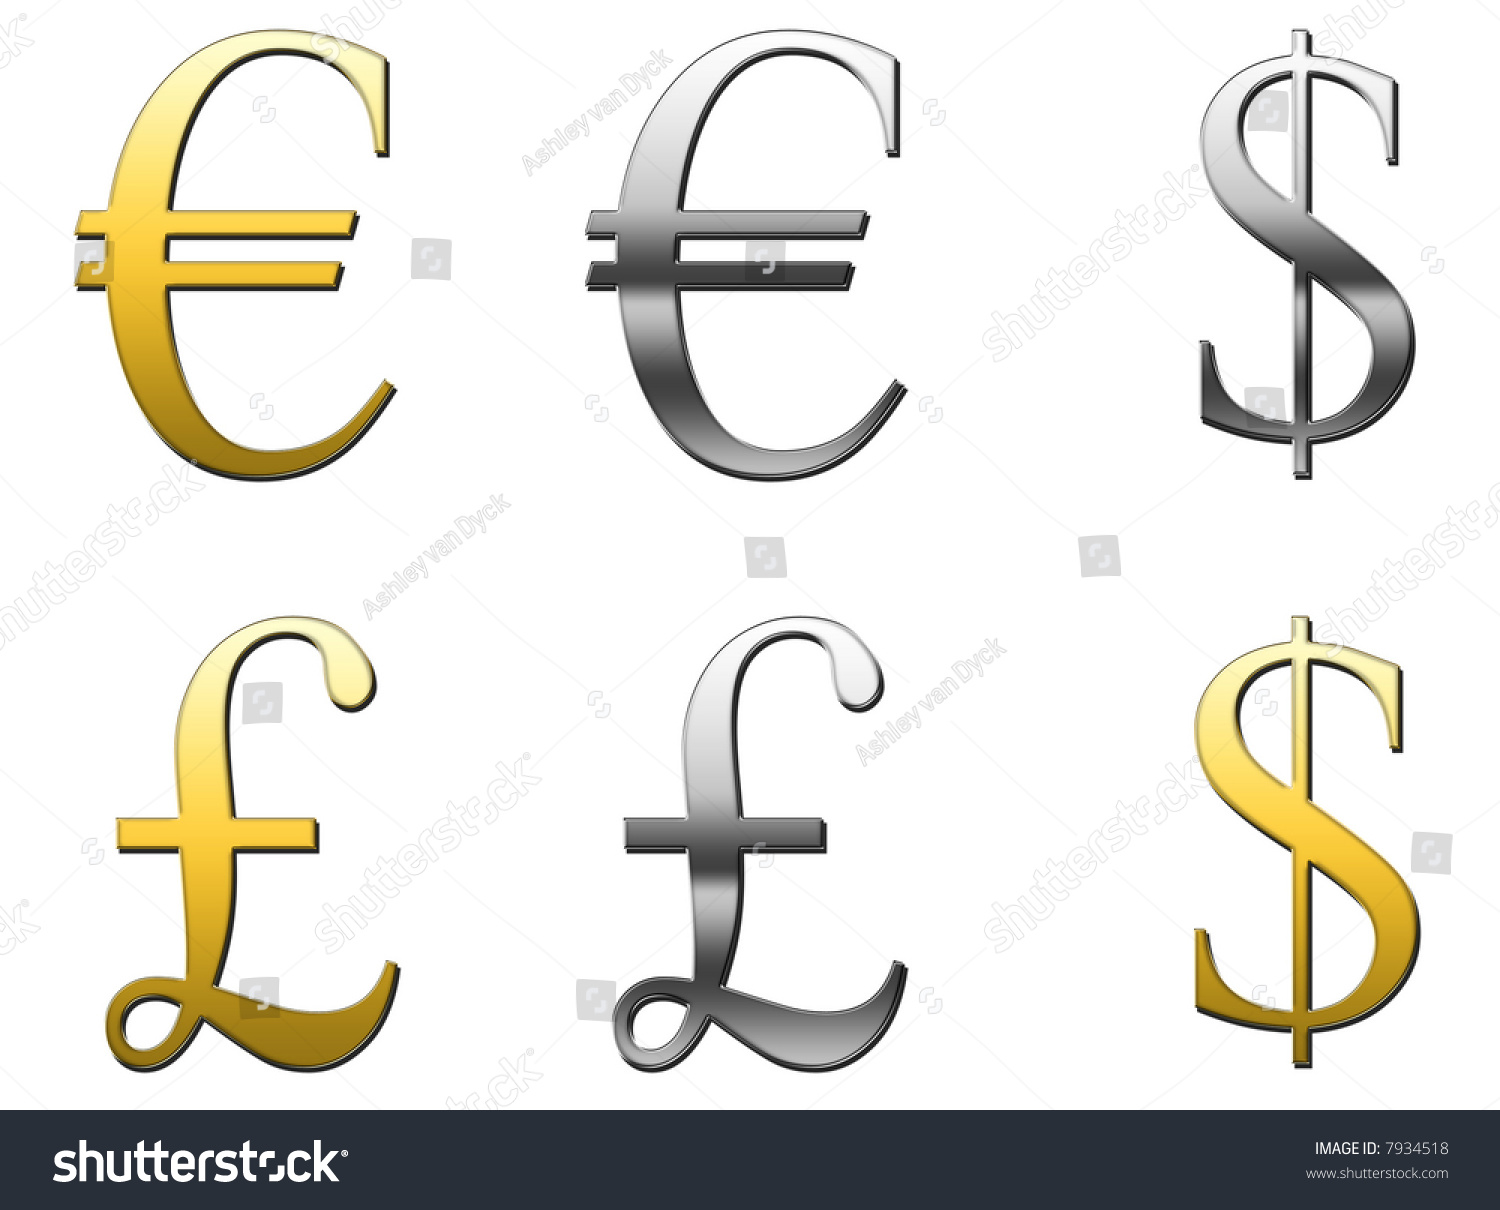 Silver trading symbol gallery symbol and sign ideas three different international financial symbols silver stock three different international financial symbols in silver and gold biocorpaavc Choice Image